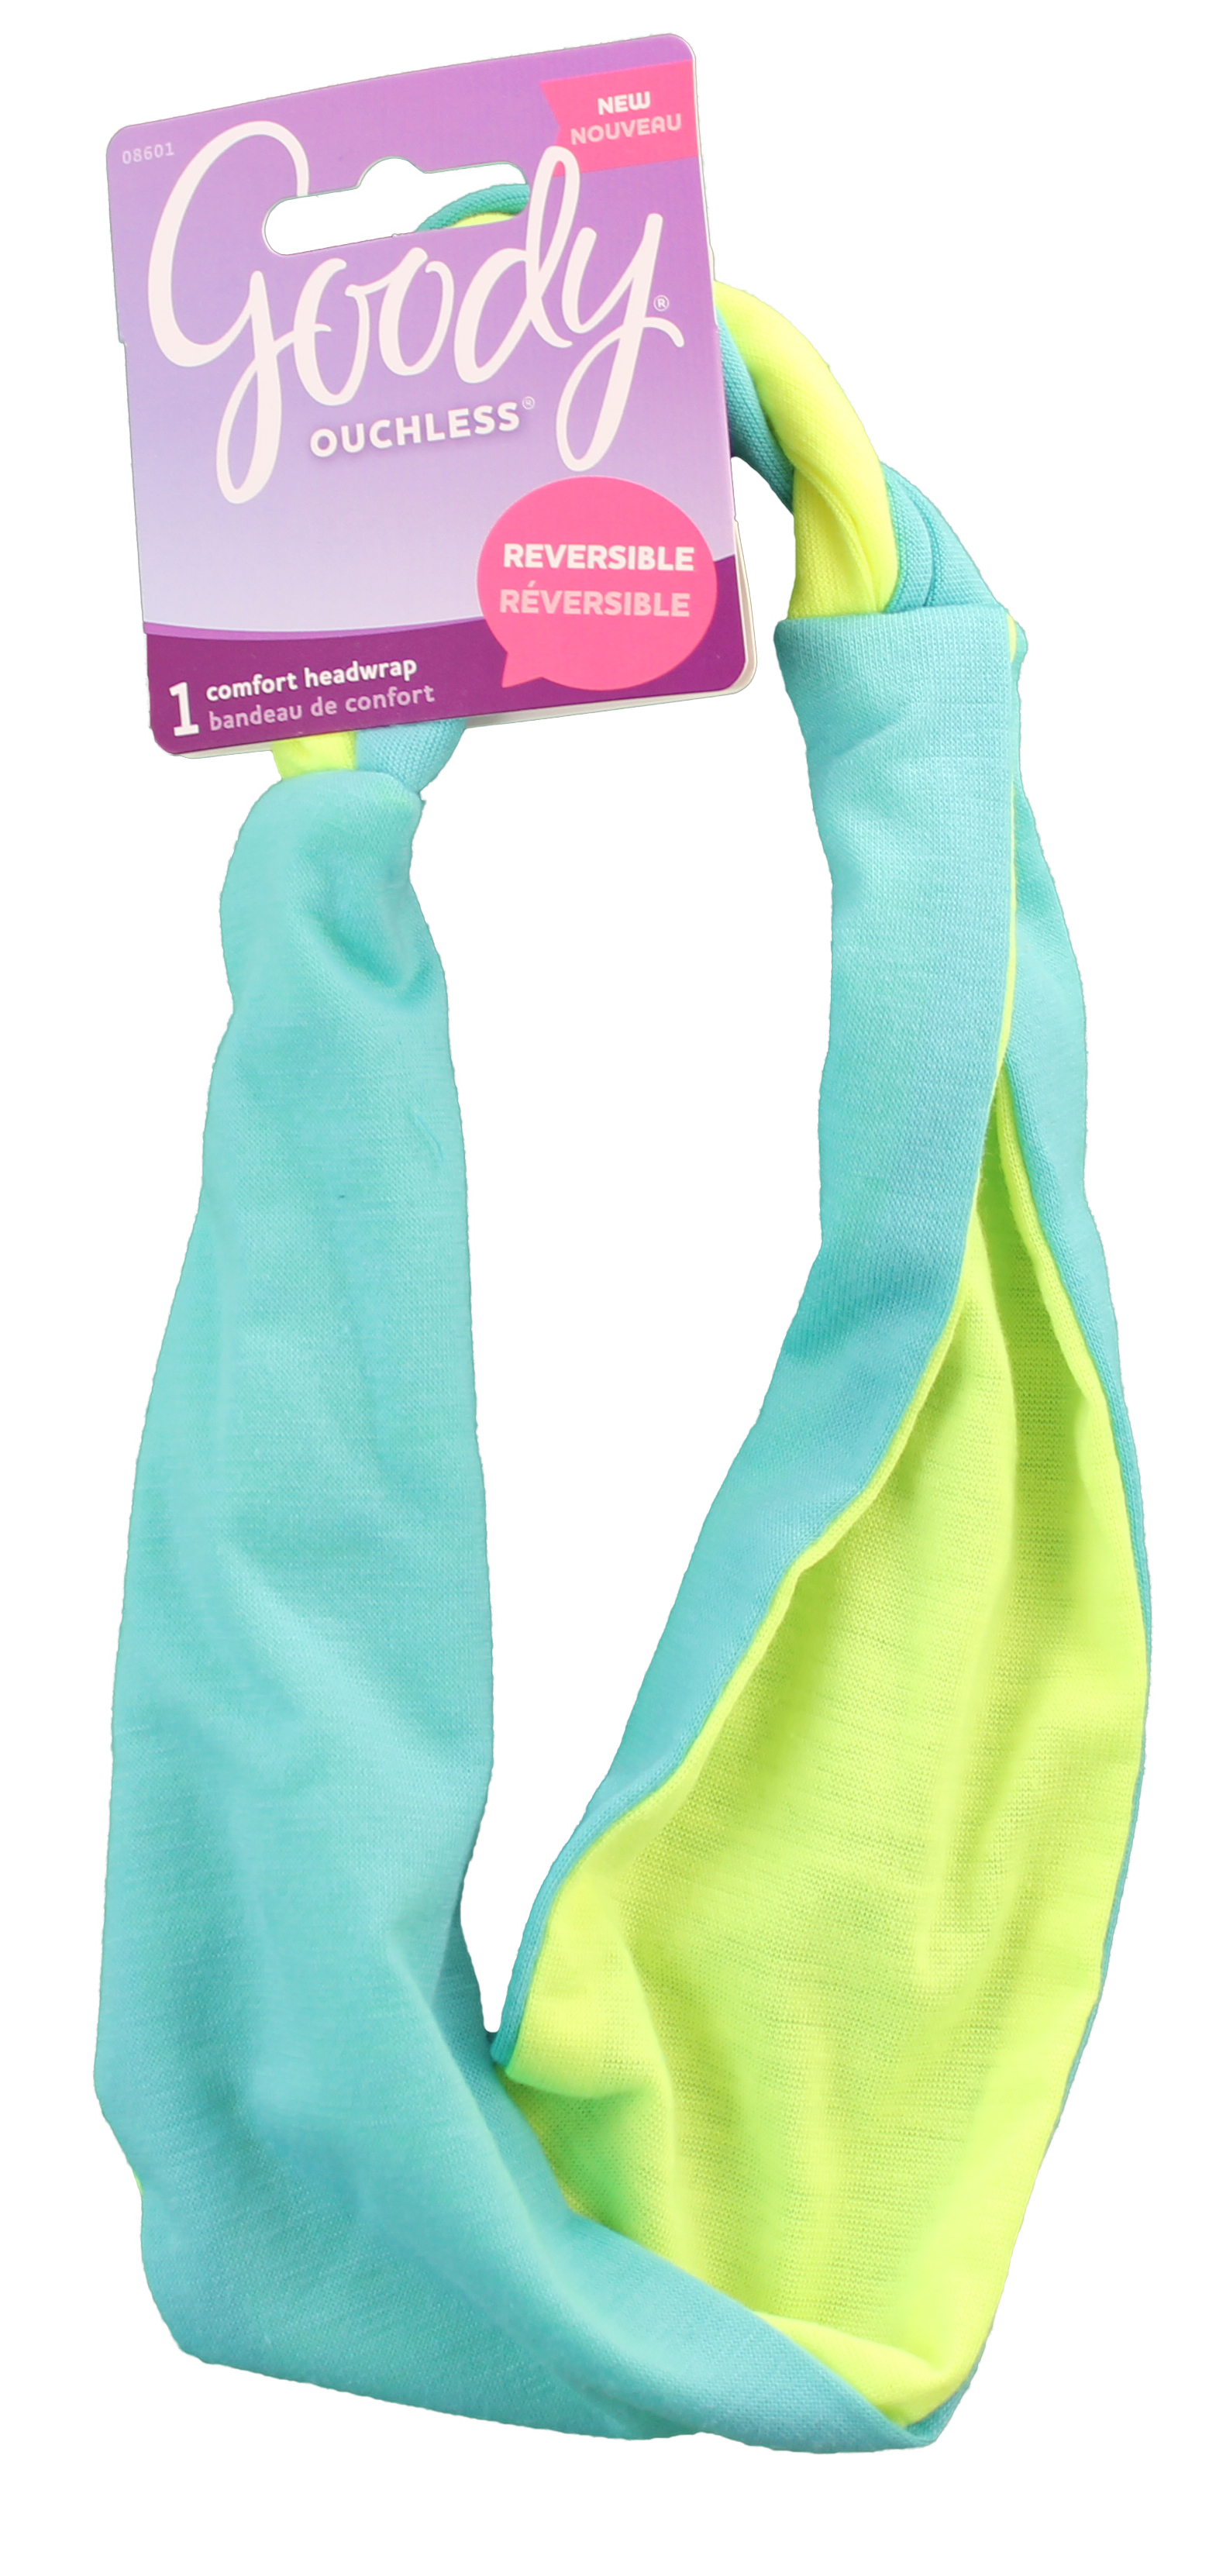 Goody Corporate Ouchless Headwrap Mint And Neon With Braid, 1 CT